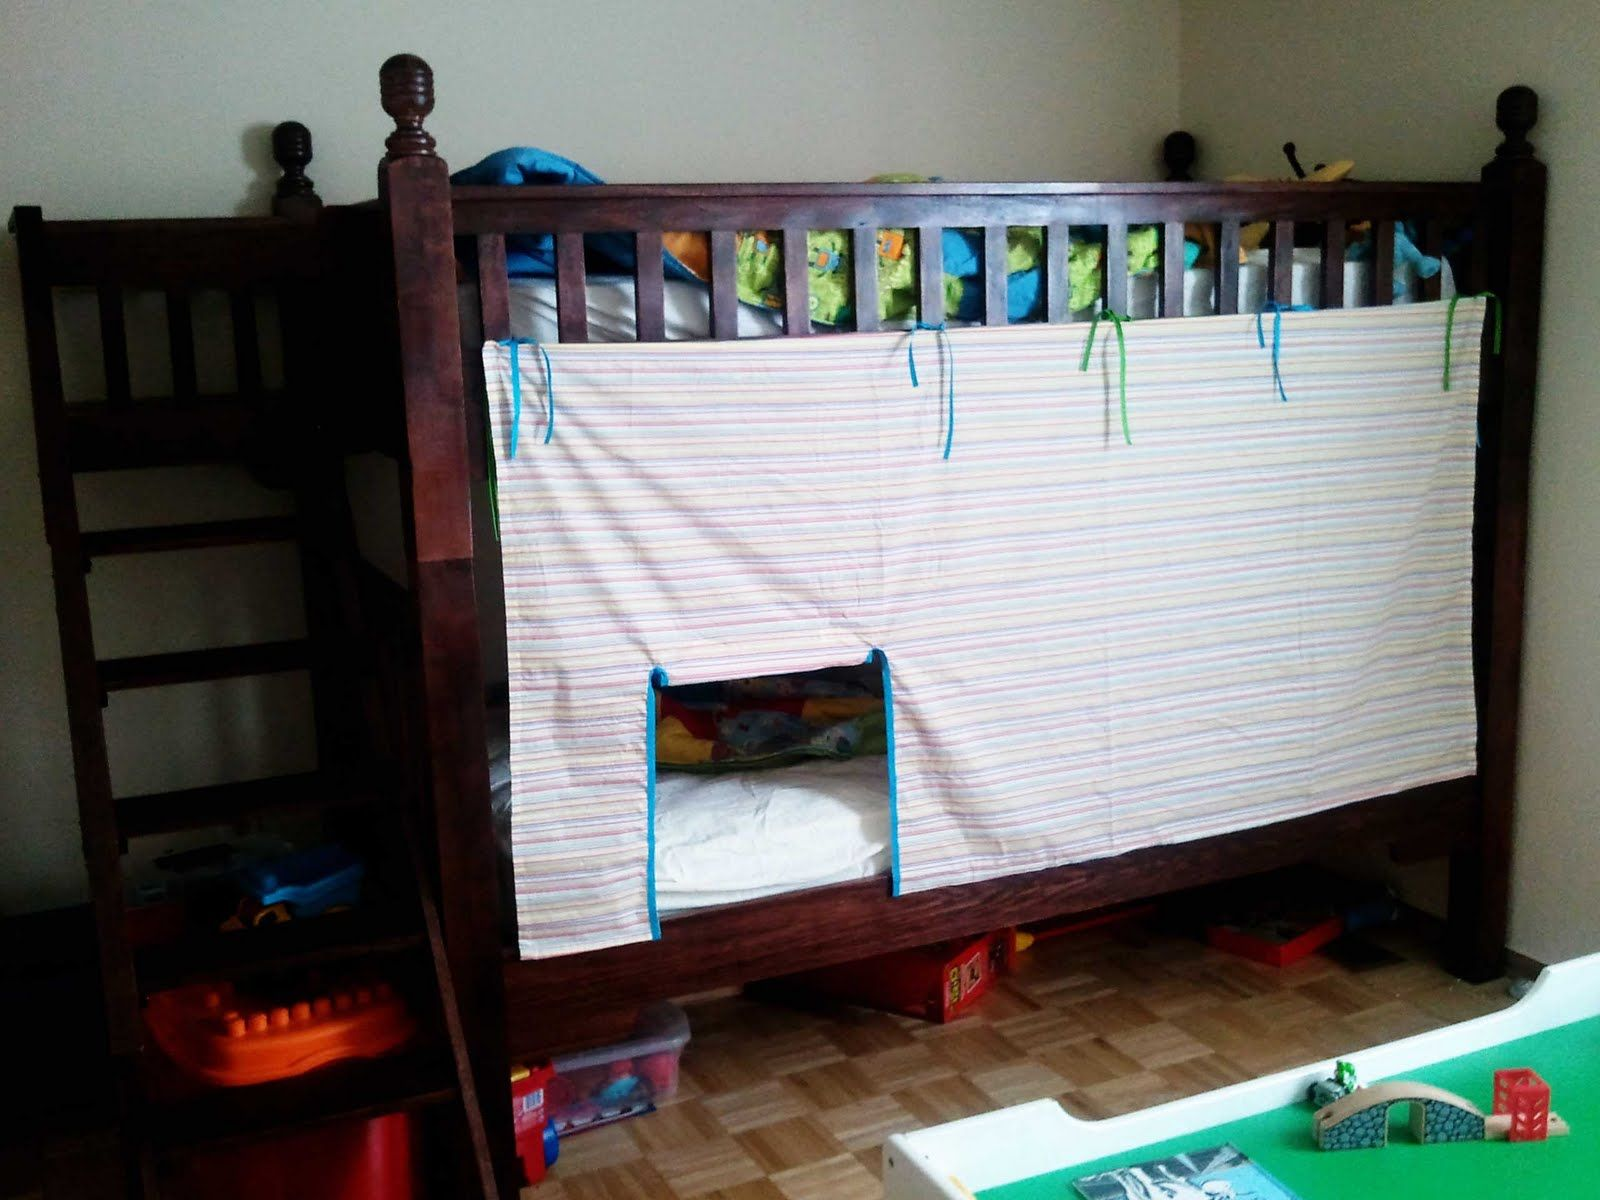 Bunk bed tent - Think Iu0027m going to do this with batman fabric and & Bunk bed tent - Think Iu0027m going to do this with batman fabric and ...